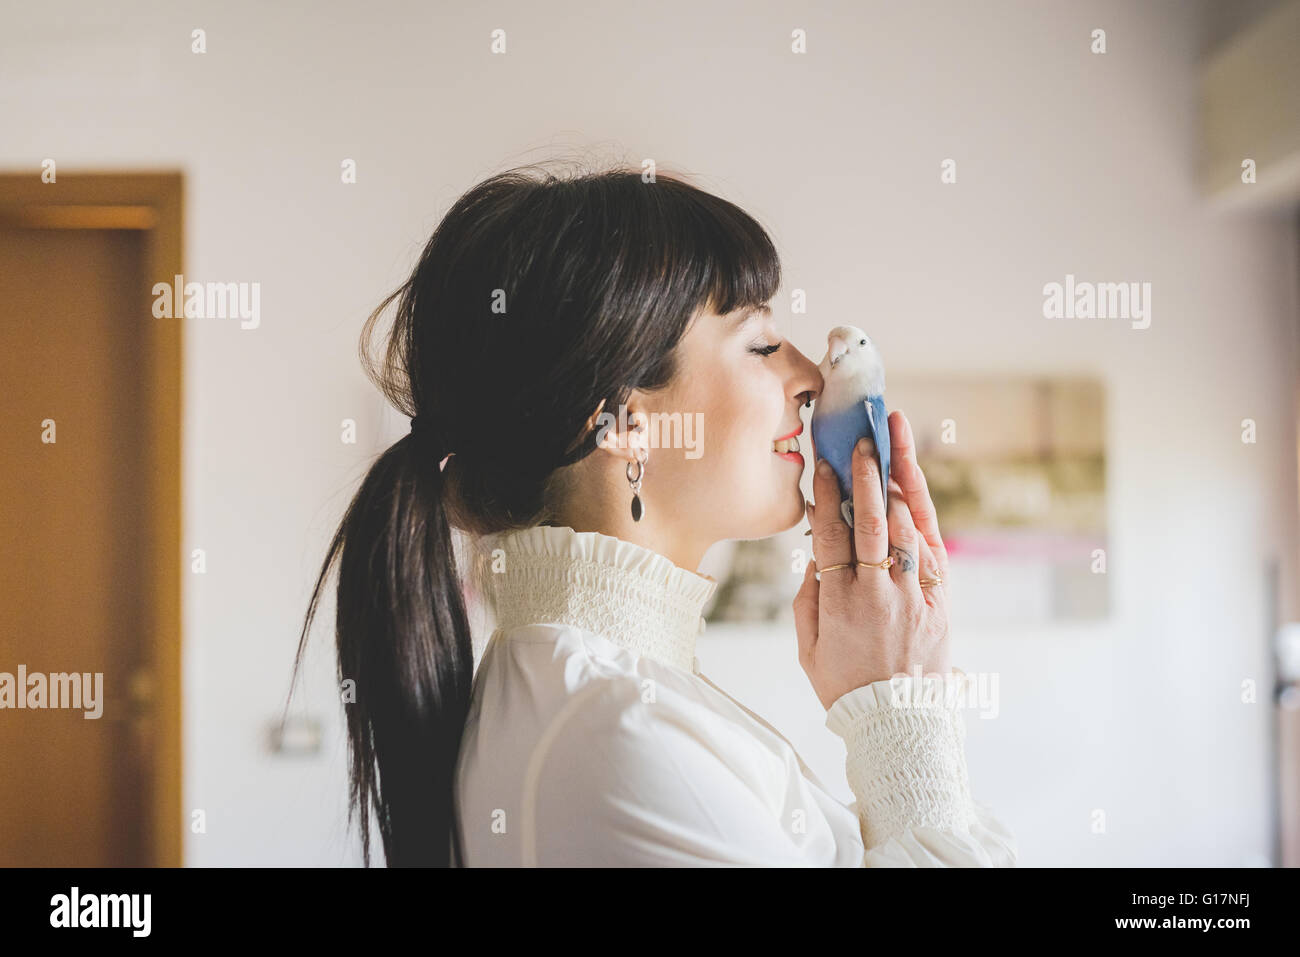 Young woman holding pet bird indoors - Stock Image